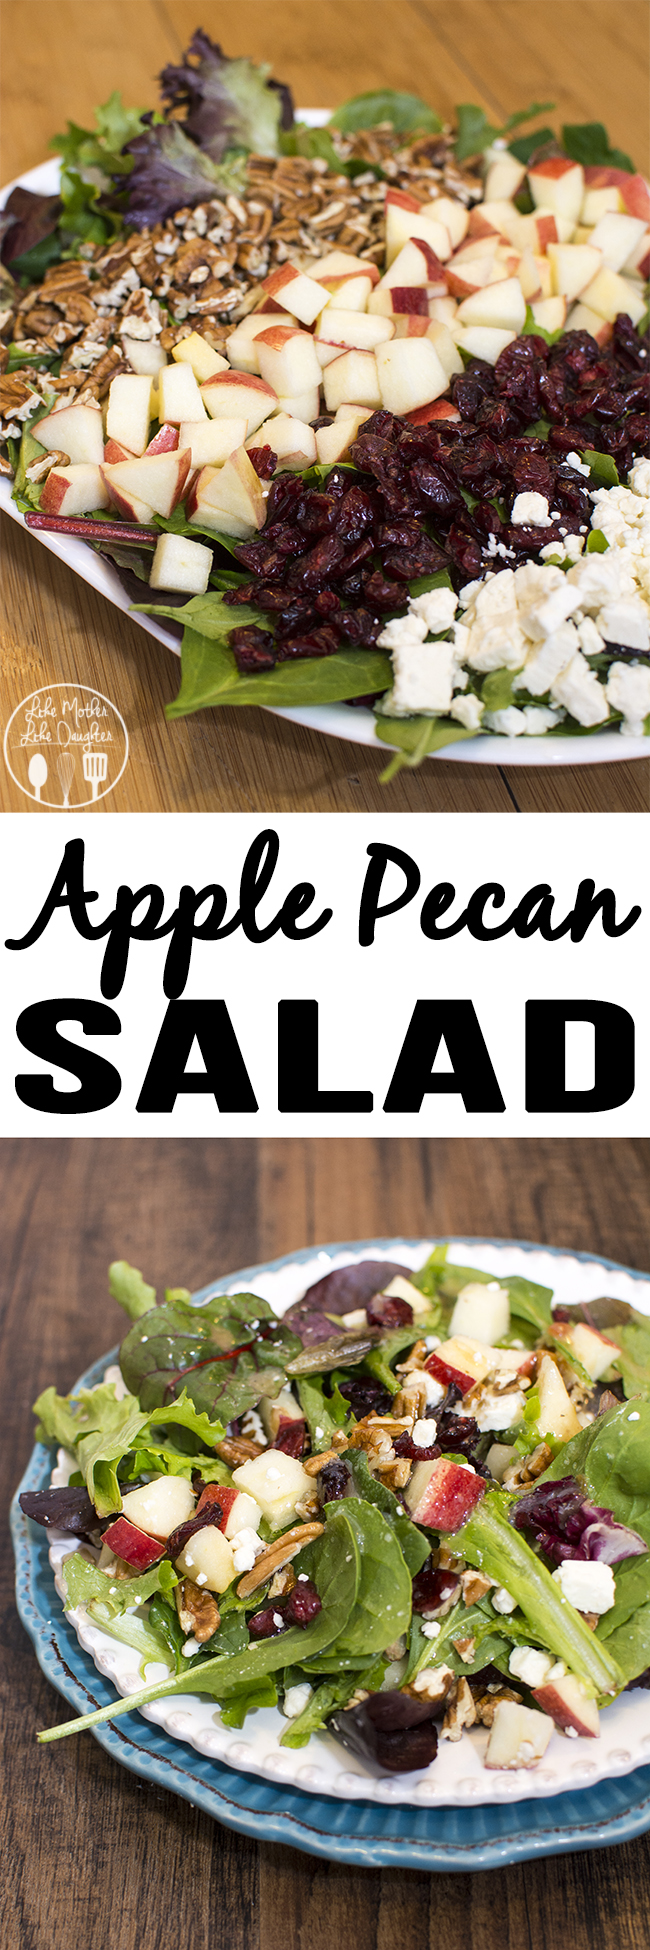 Apple Pecan Salad - This delicious and flavorful salad combines crisp apples, sweet dried cranberries, salty feta and crunchy pecans all tossed together with leafy greens and topped with your favorite salad dressing..